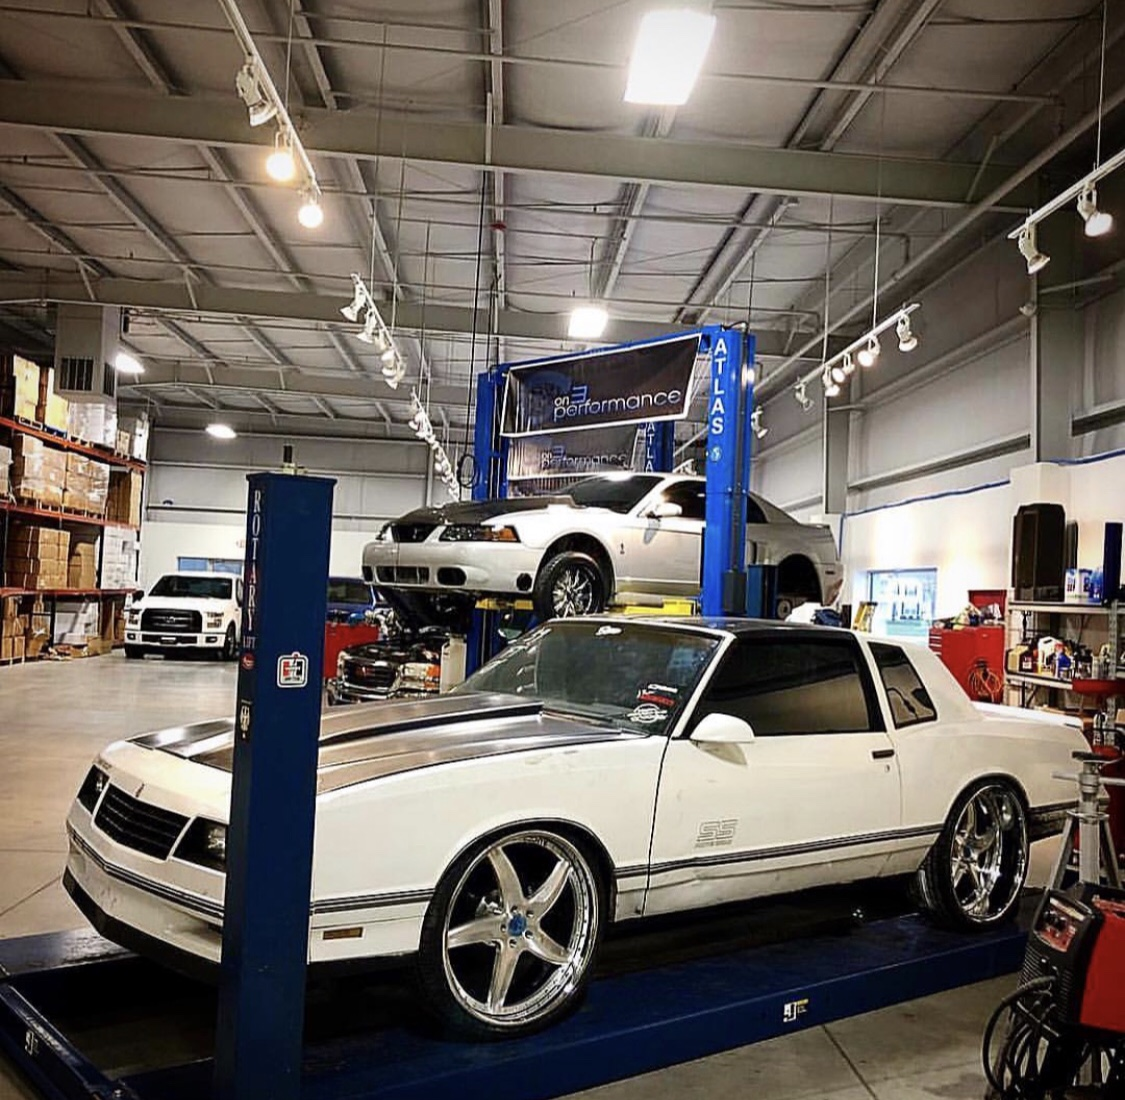 G Body Cars for Sale Near Me New On 3 Performance G-body Single Turbo System for Lsx Swap – T6 ...